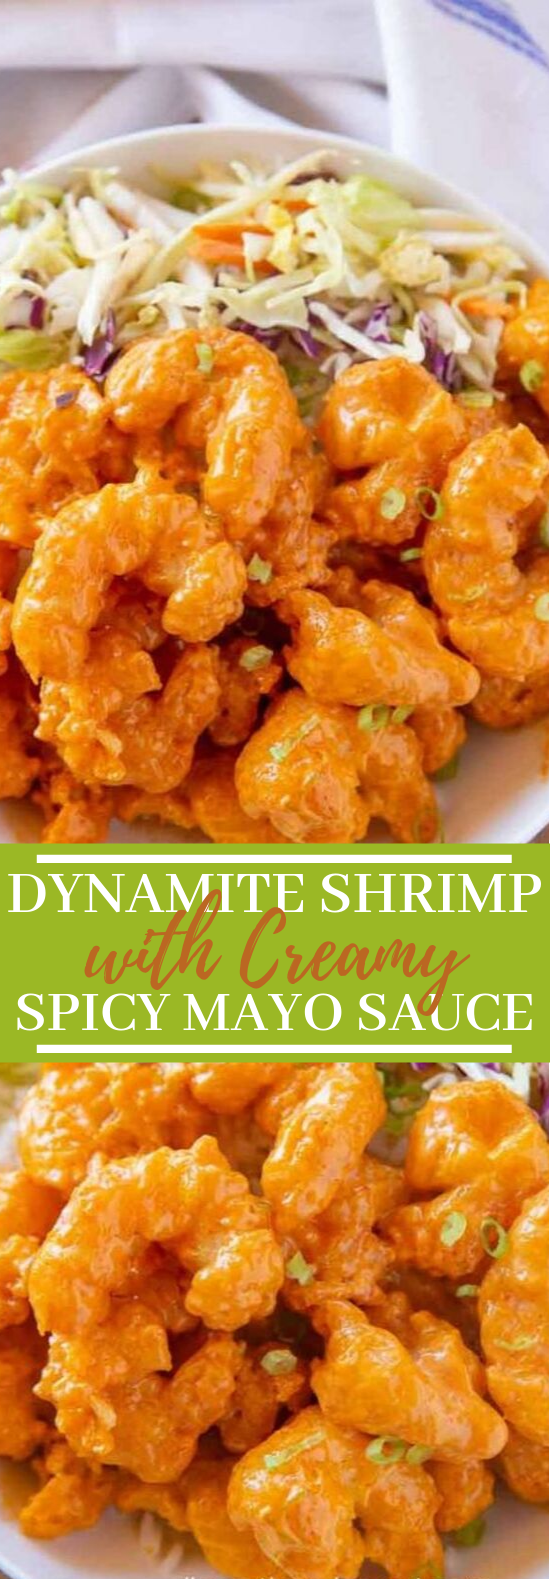 Dynamite Shrimp #lowcarb #appetizers